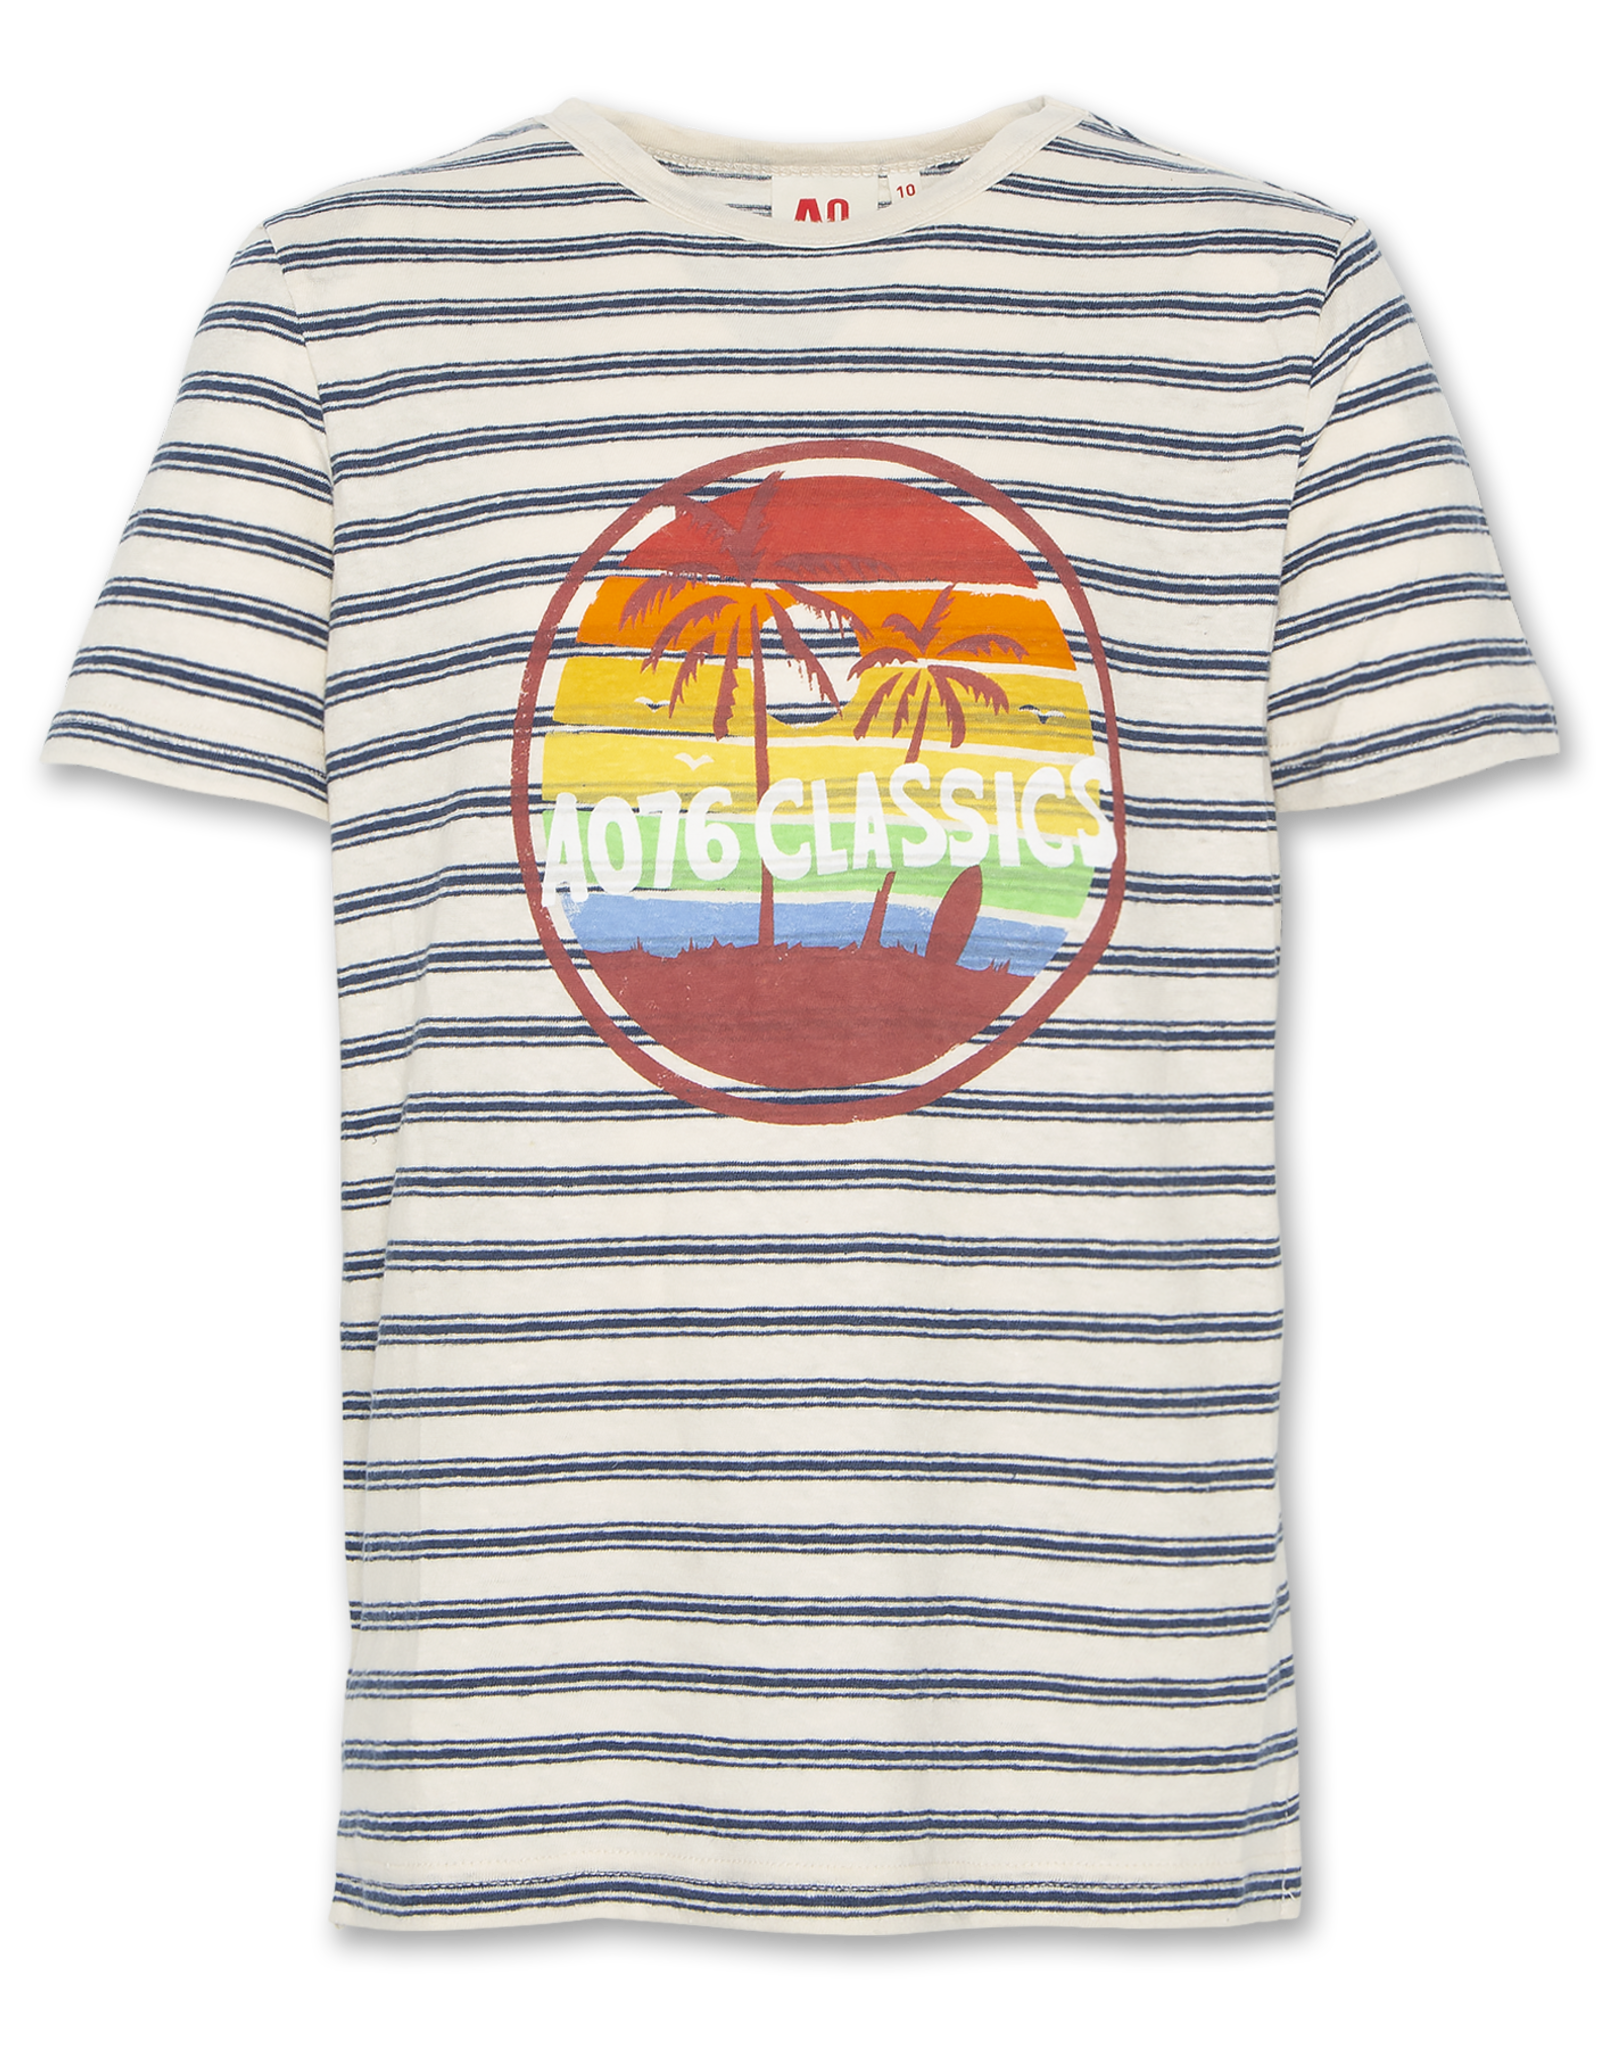 AMERICAN OUTFITTERS Ao76 T-shirt C-neck Classics